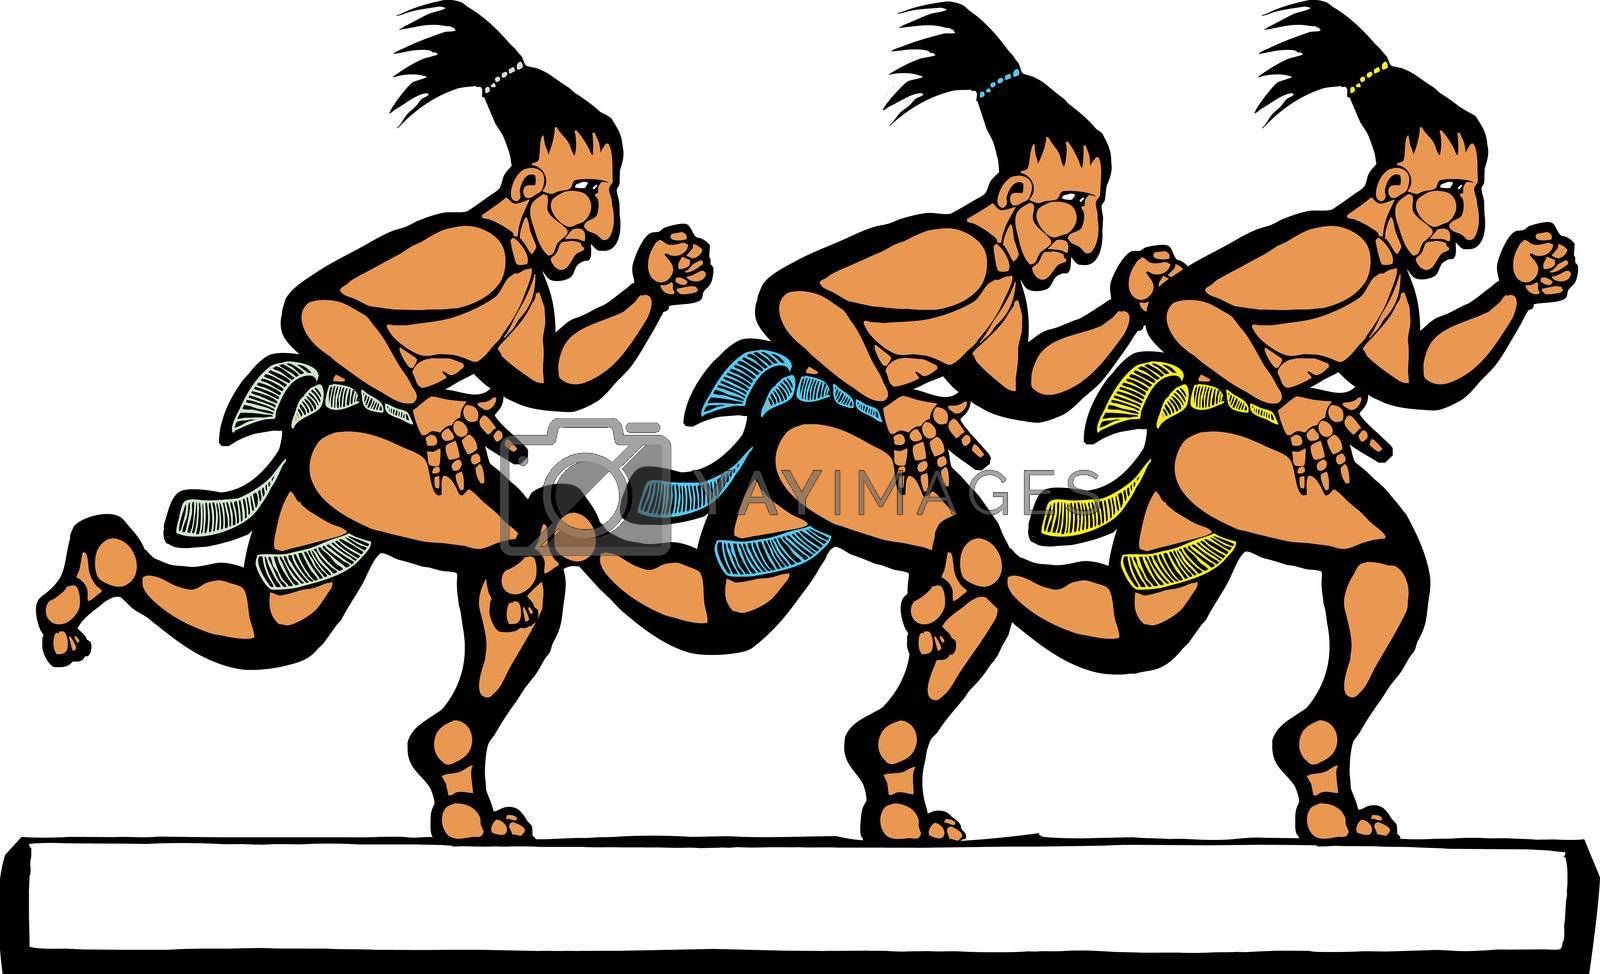 Mayan men running in a group of three.